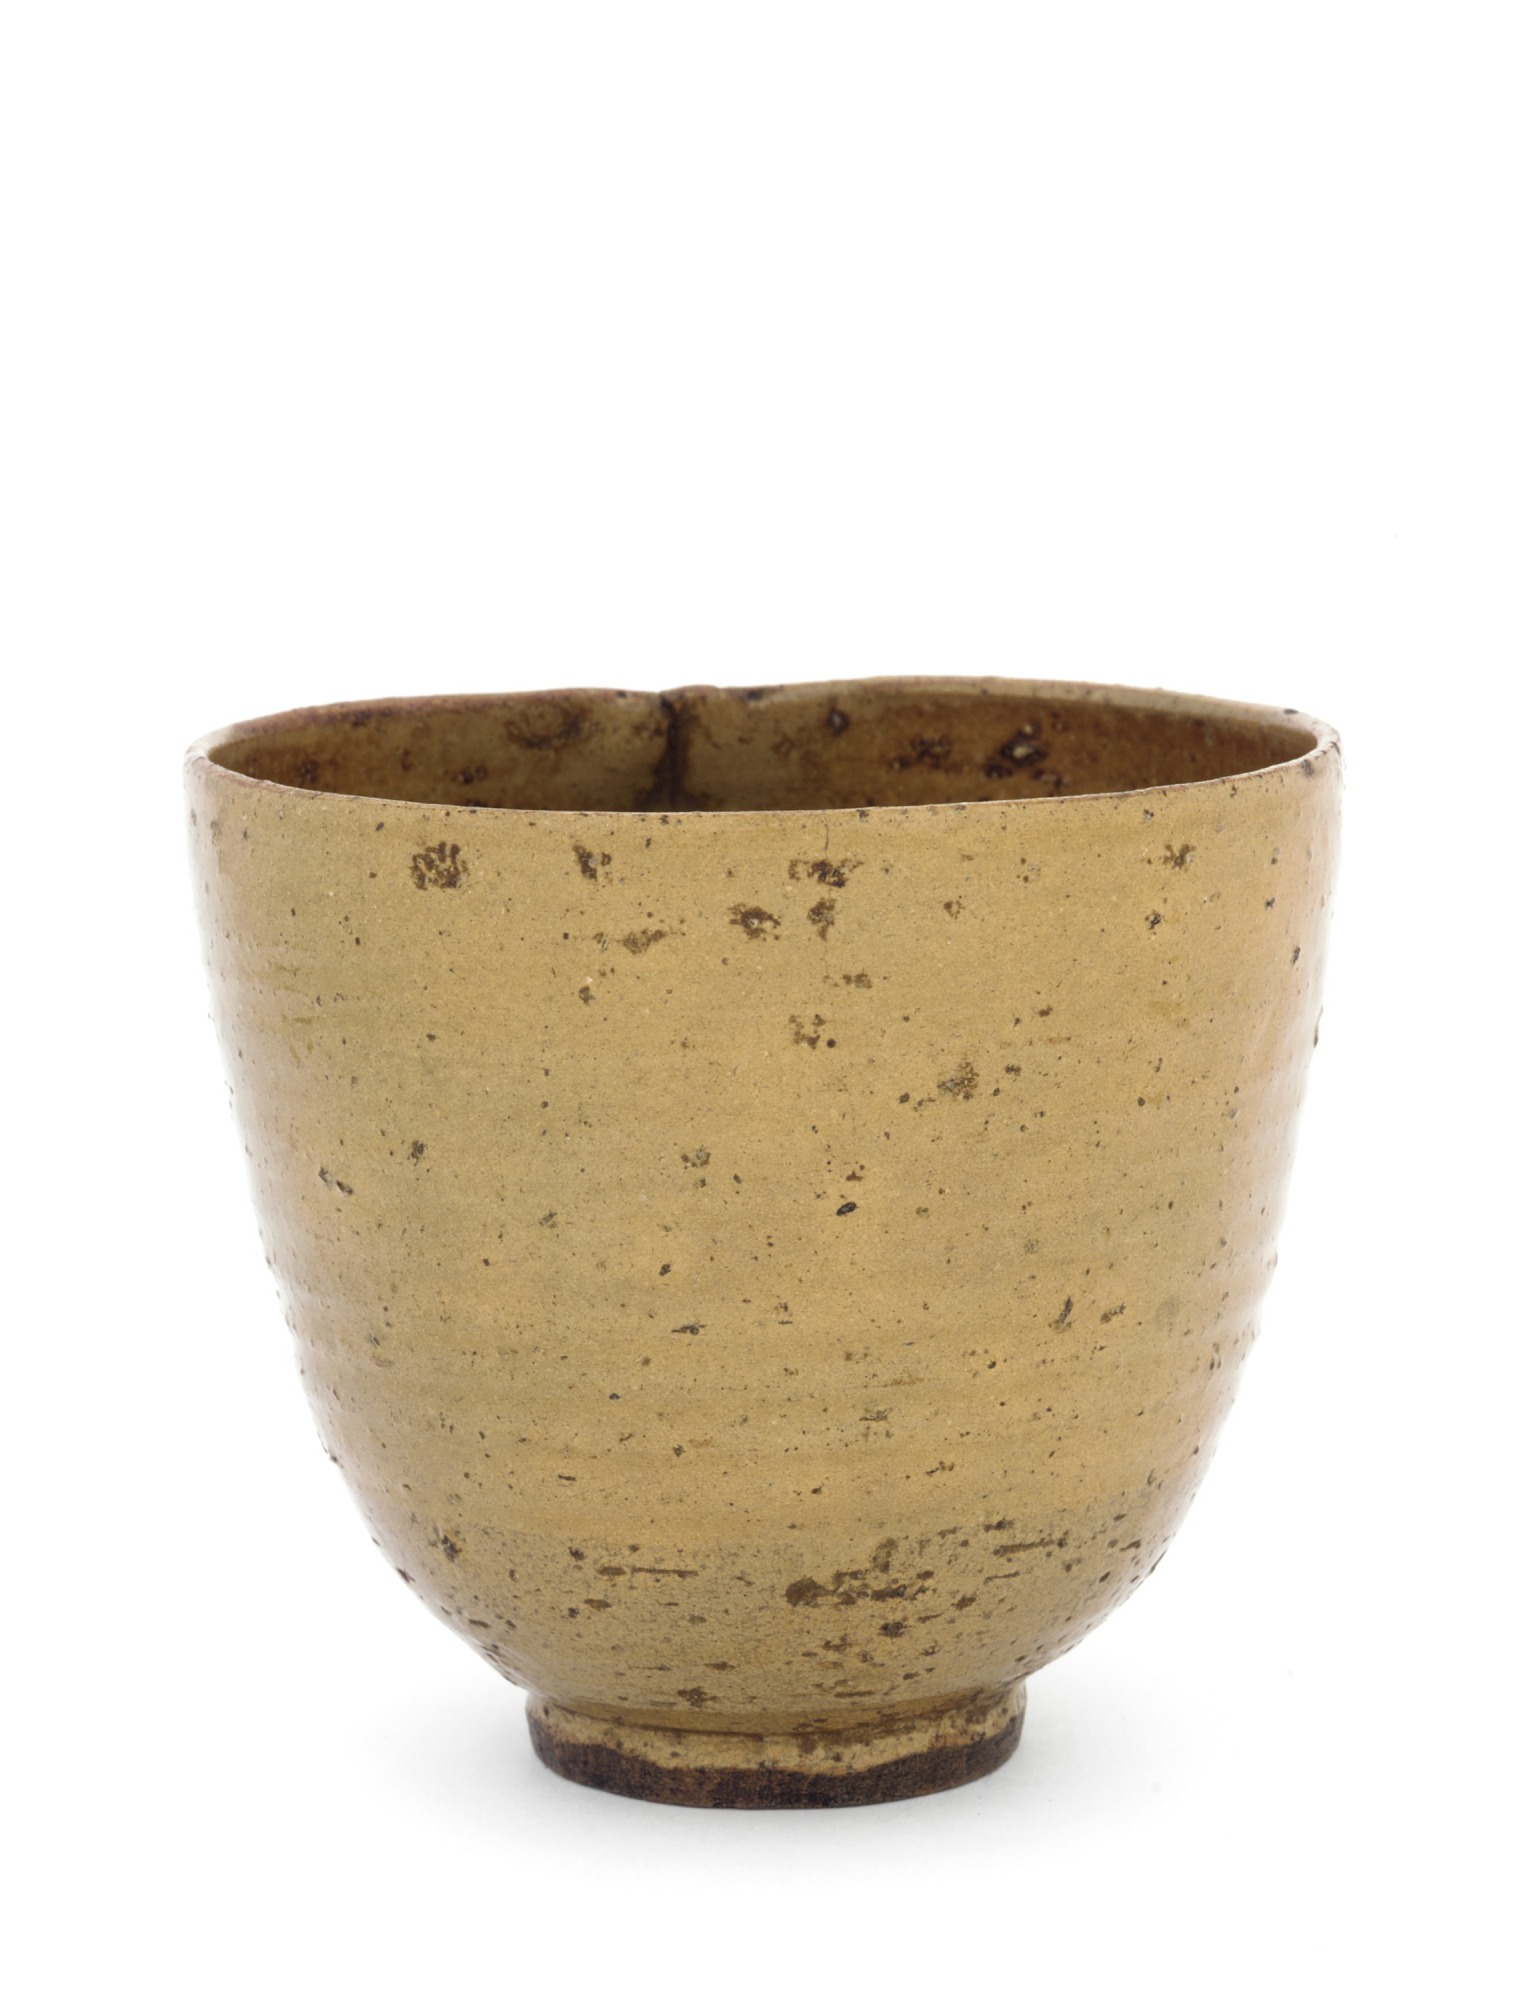 profile: Tea bowl, possibly Hagi ware